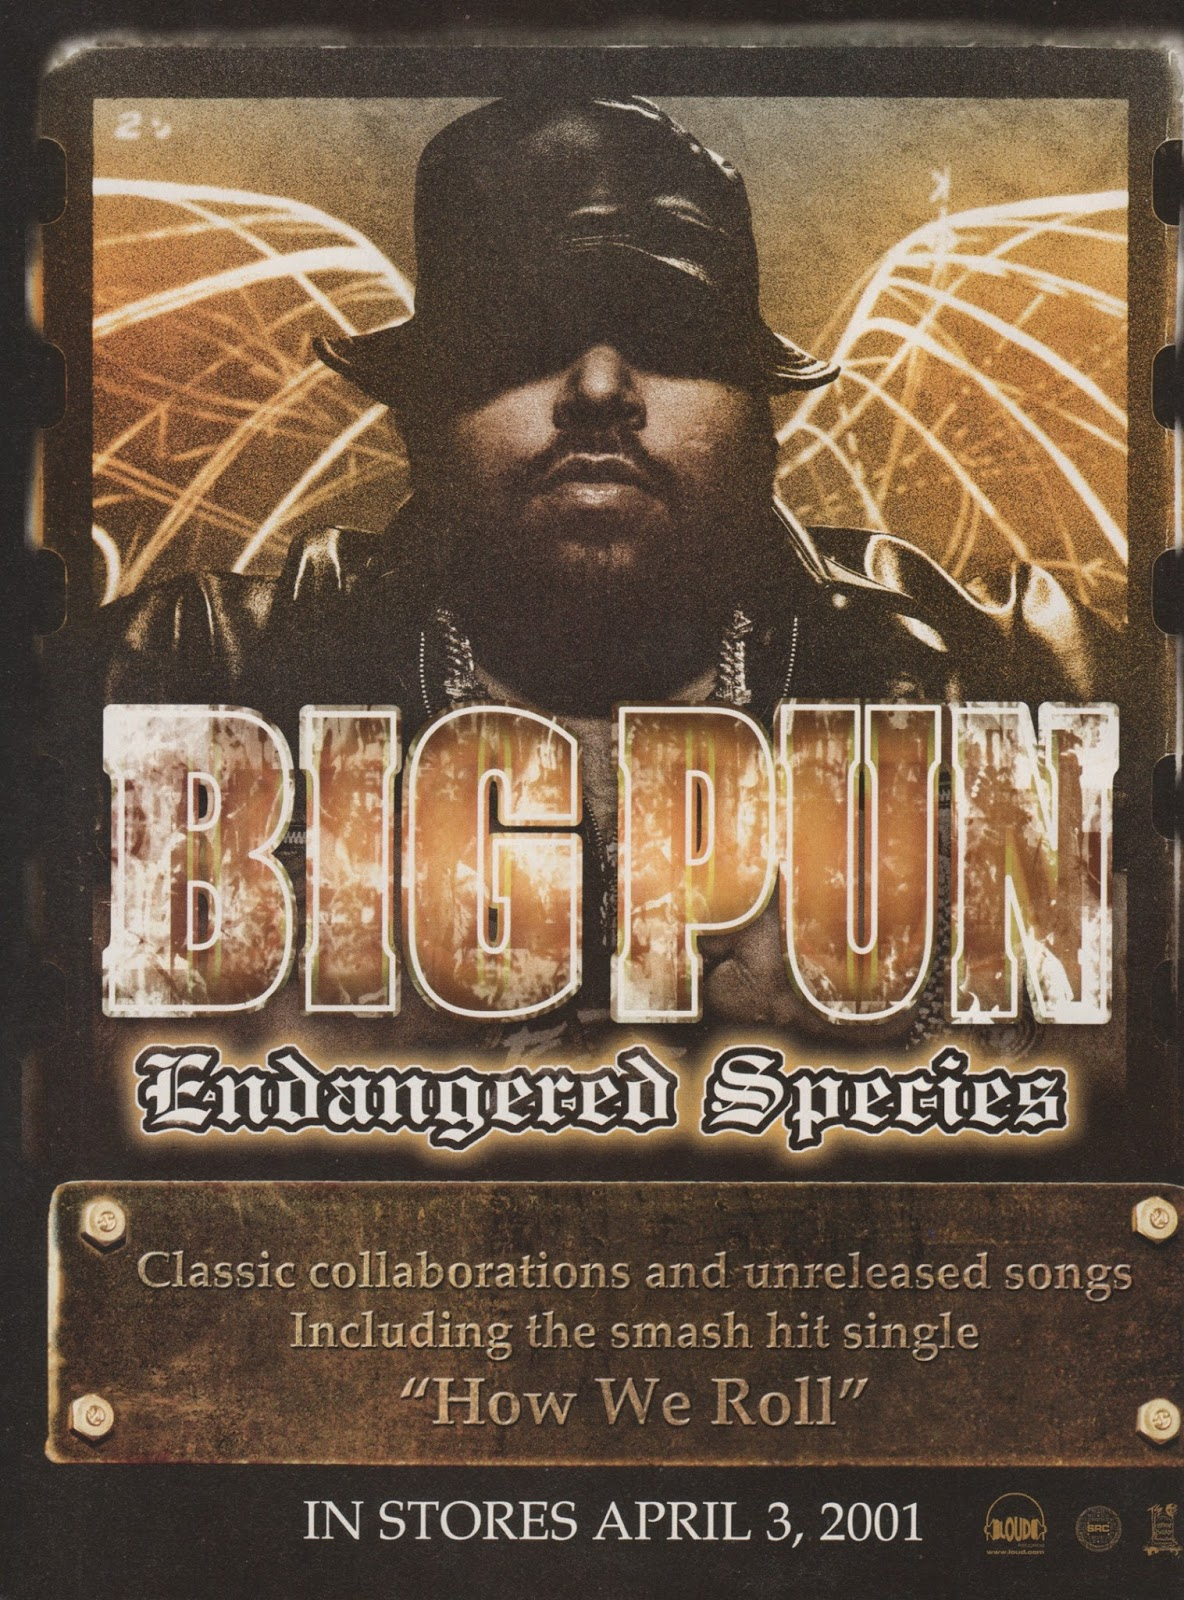 Big Pun Endangered Species Advertisement 2001